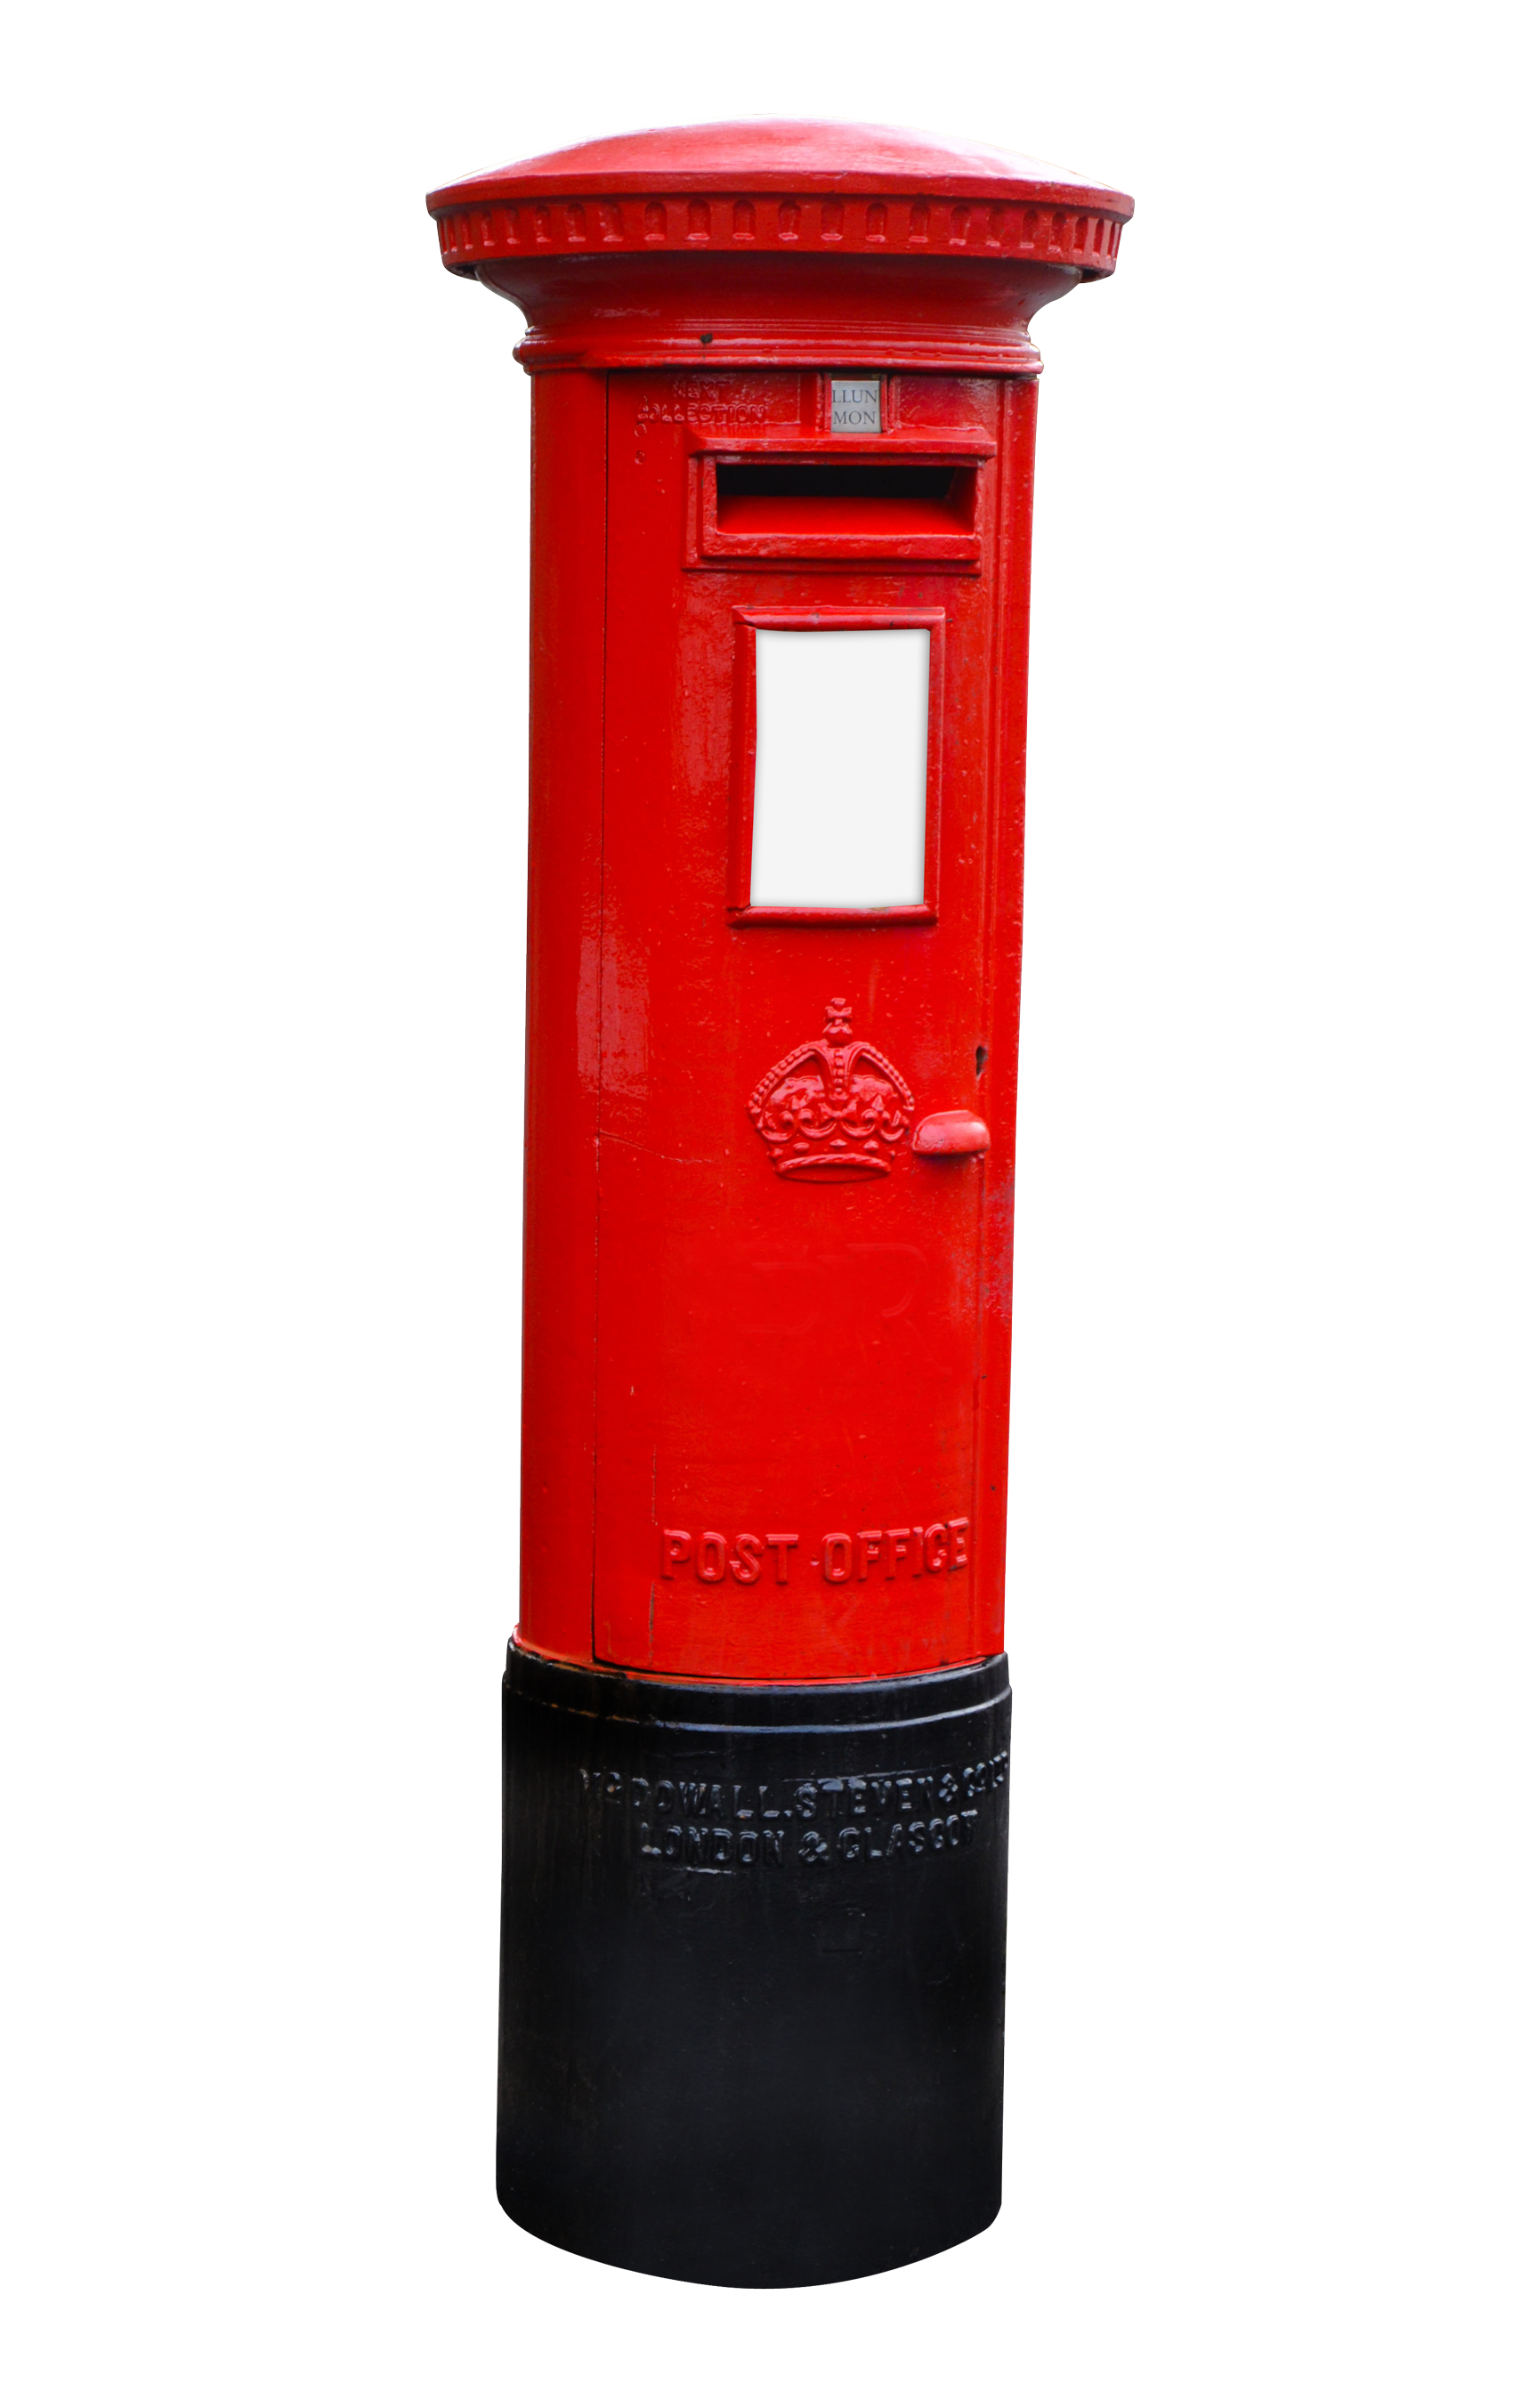 Postbox Png Image Post Box Letter Box Mailbox